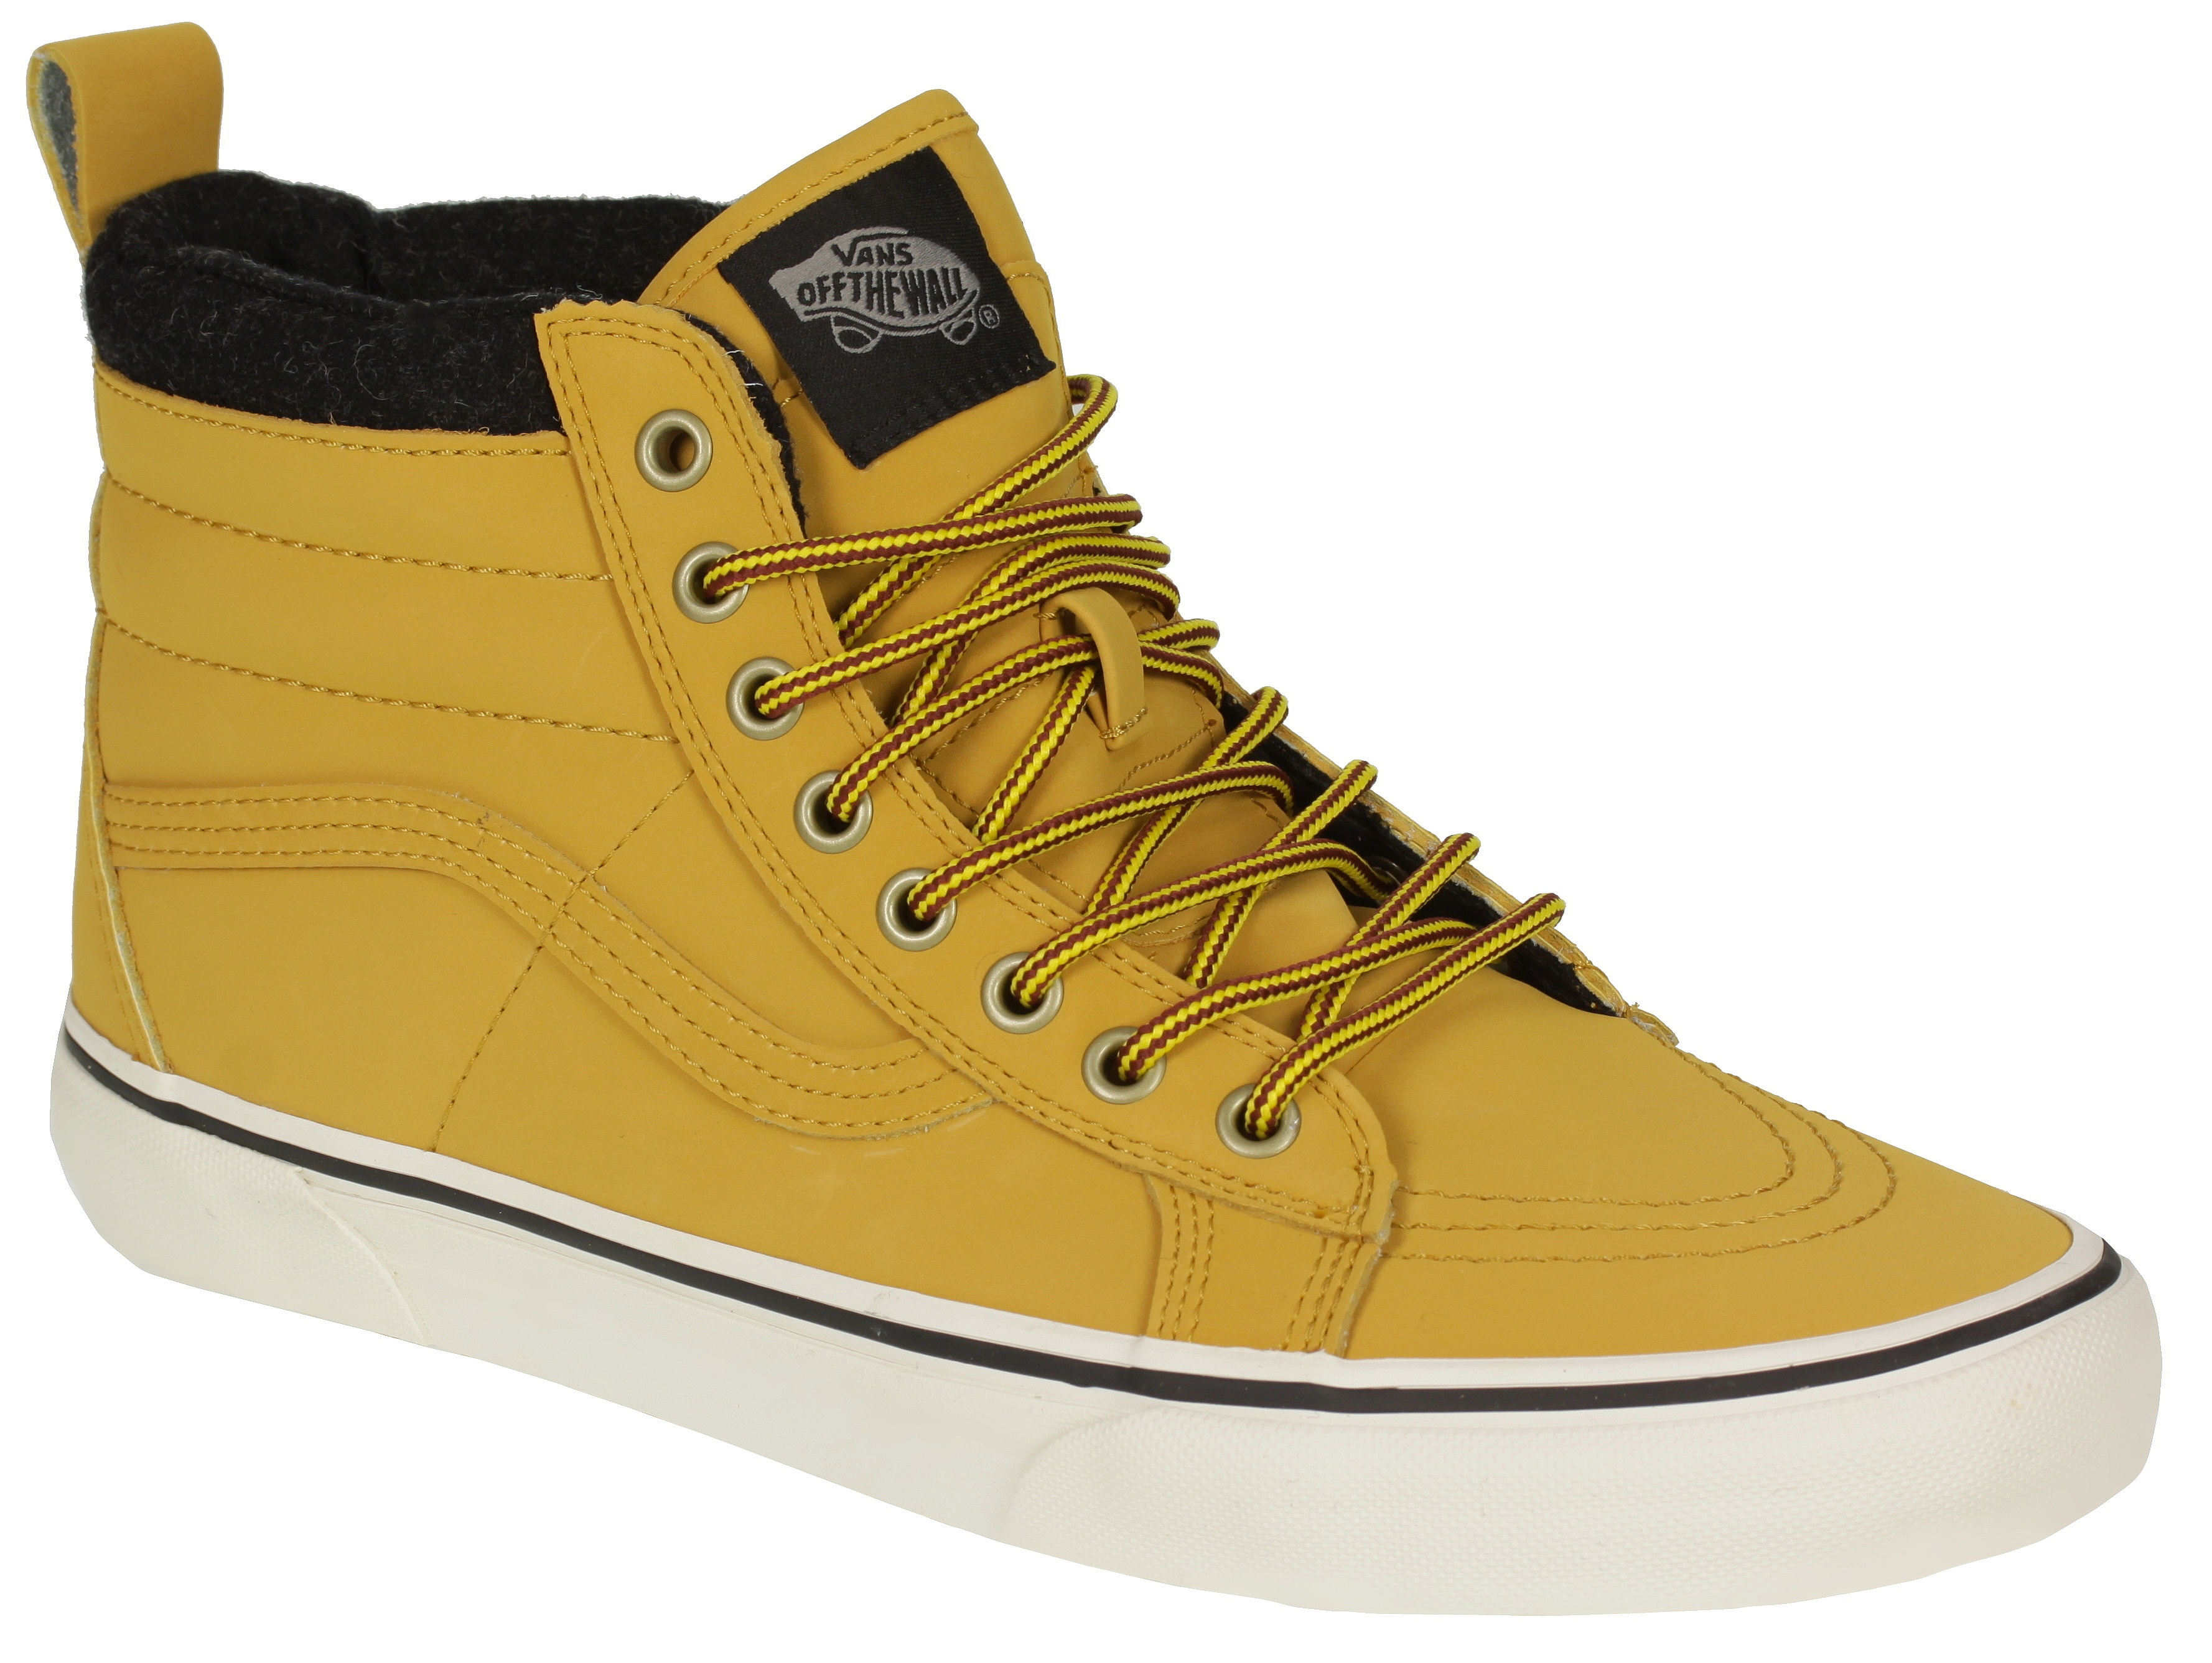 b3f3a933a3f shoes Vans Sk8-Hi MTE - MTE Honey Leather - Snowboard shop ...